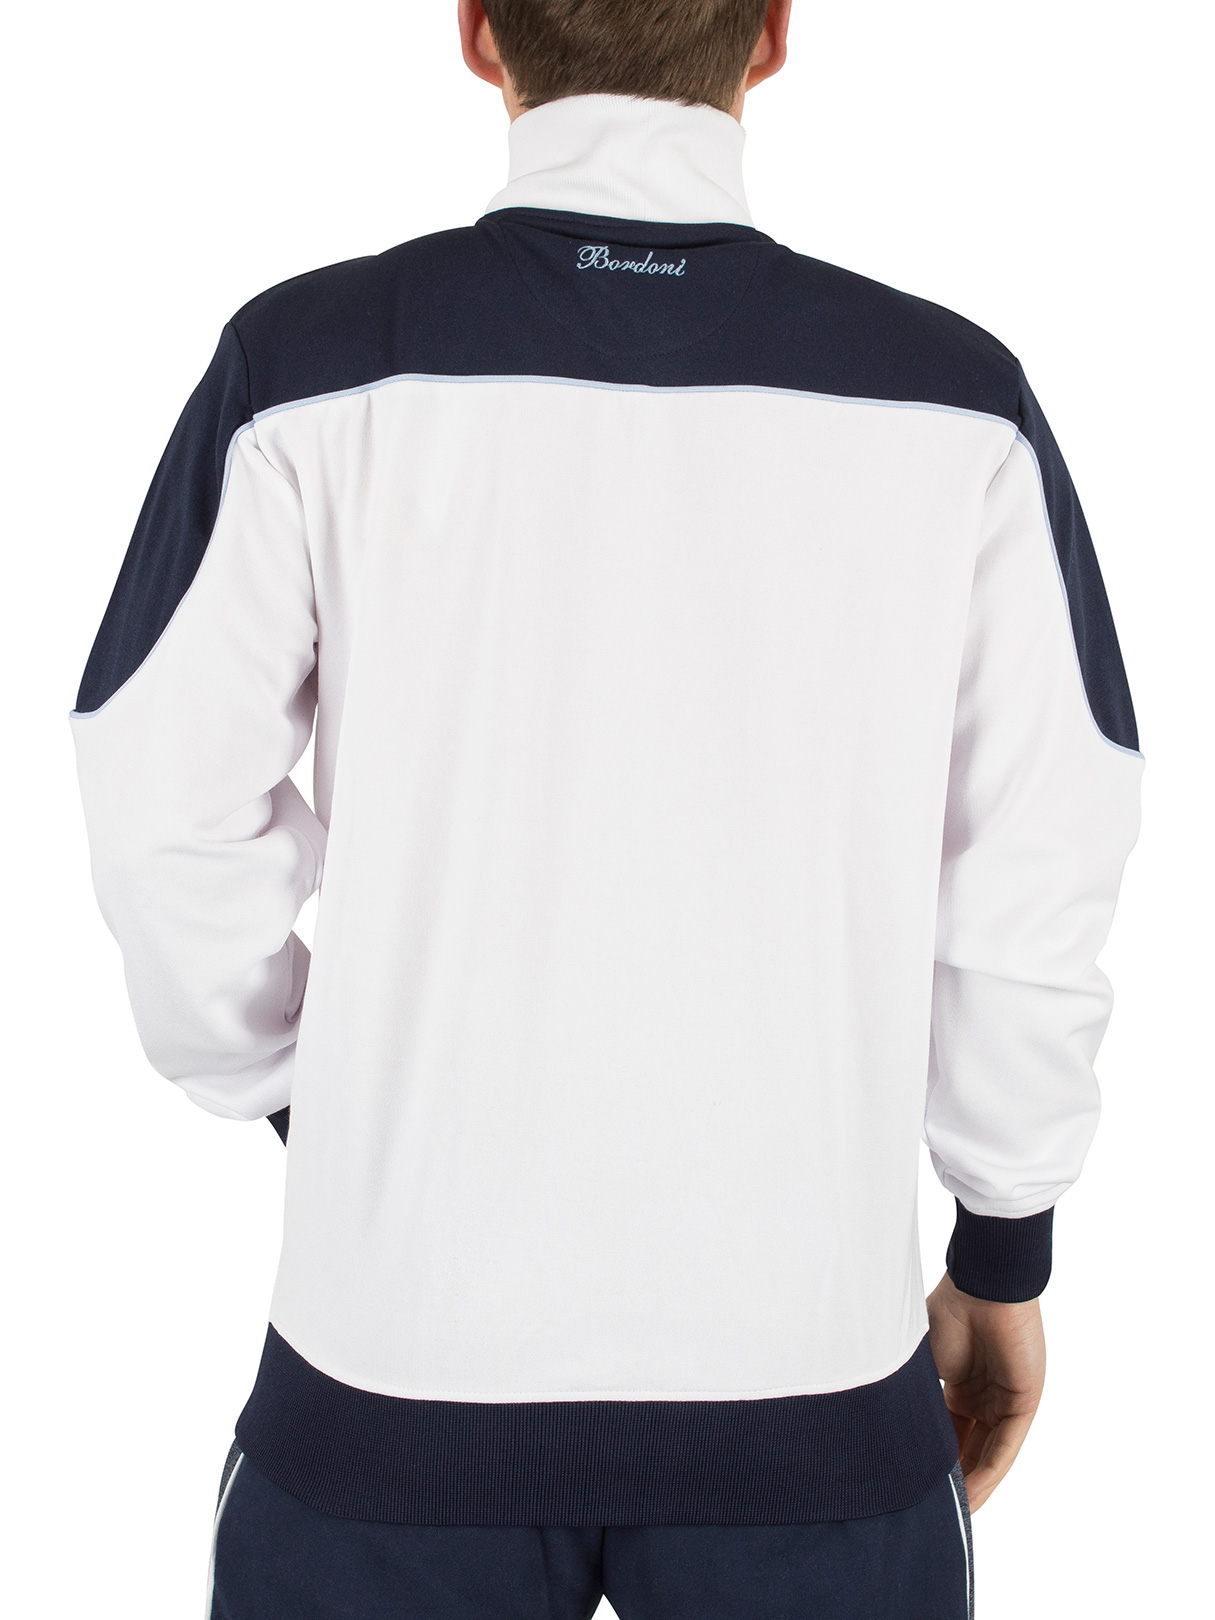 ellesse herren bordoni panelled logo tracktop jacke wei. Black Bedroom Furniture Sets. Home Design Ideas